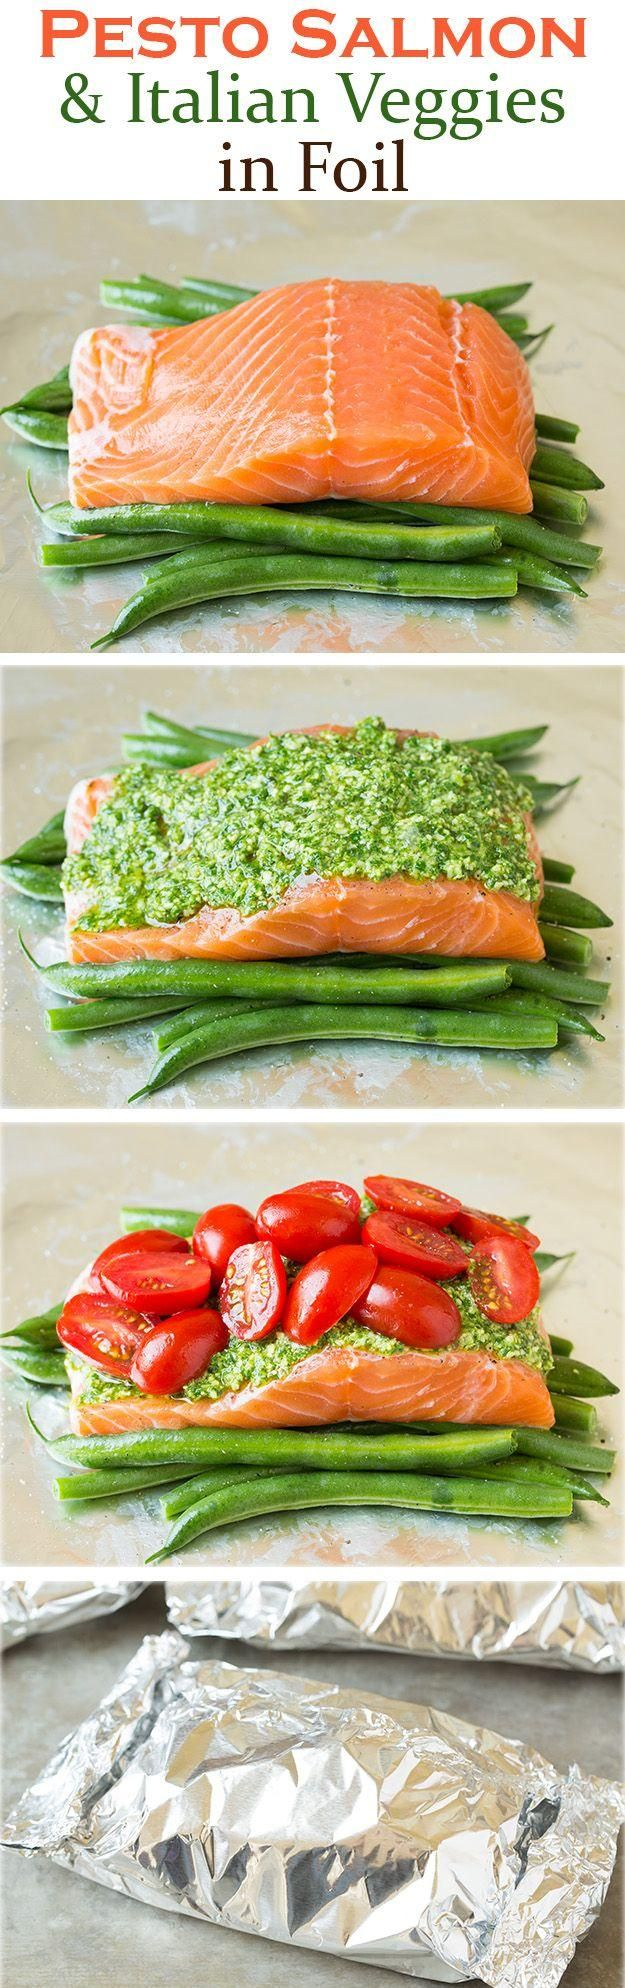 1000+ images about fish recipes on Pinterest